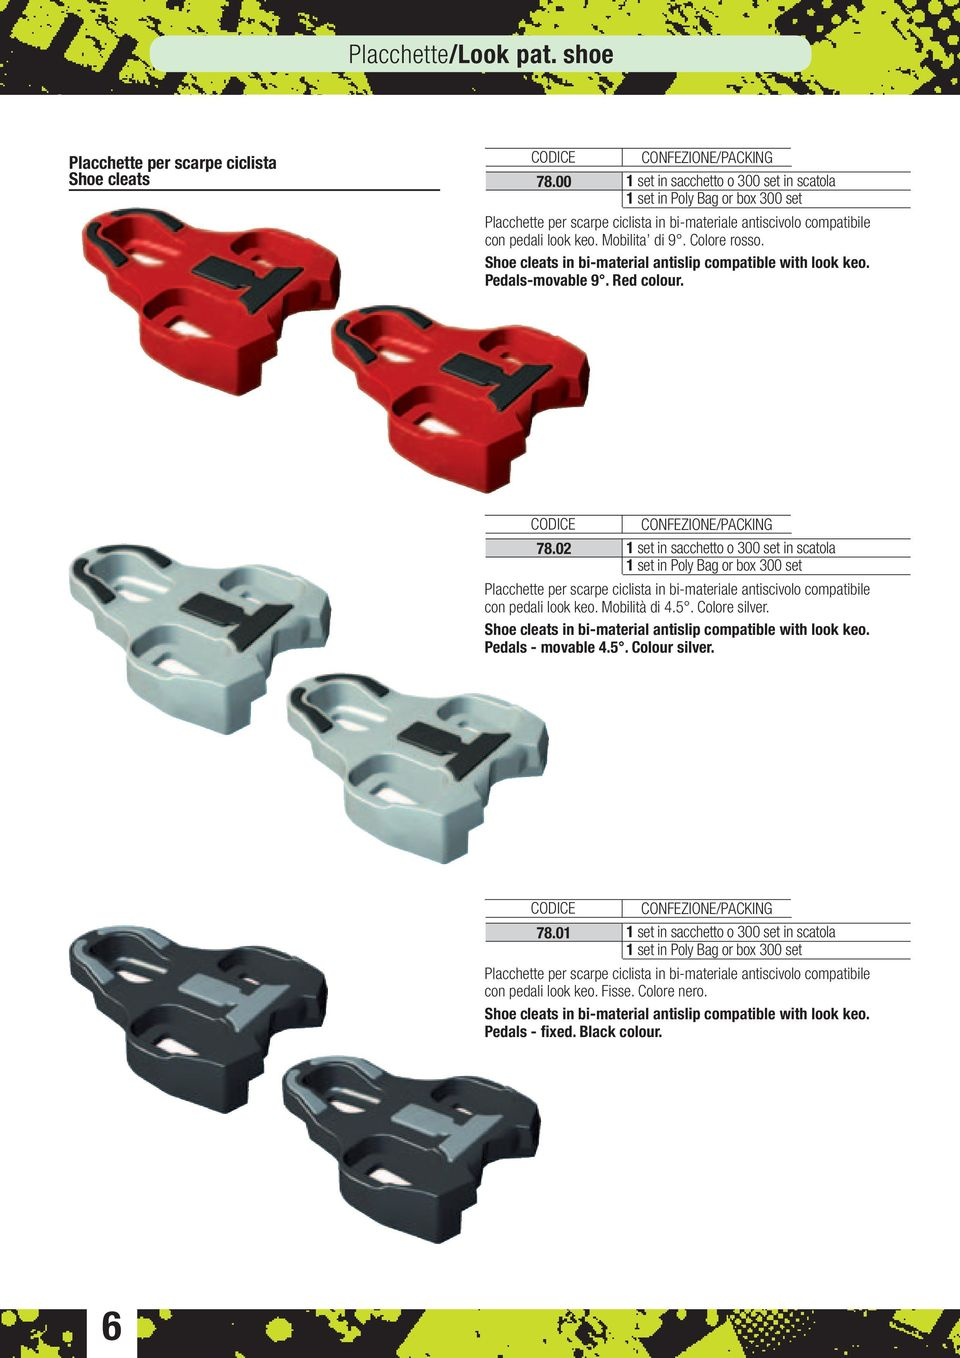 Shoe cleats in bi-material antislip compatible with look keo. Pedals-movable 9. Red colour. 78.